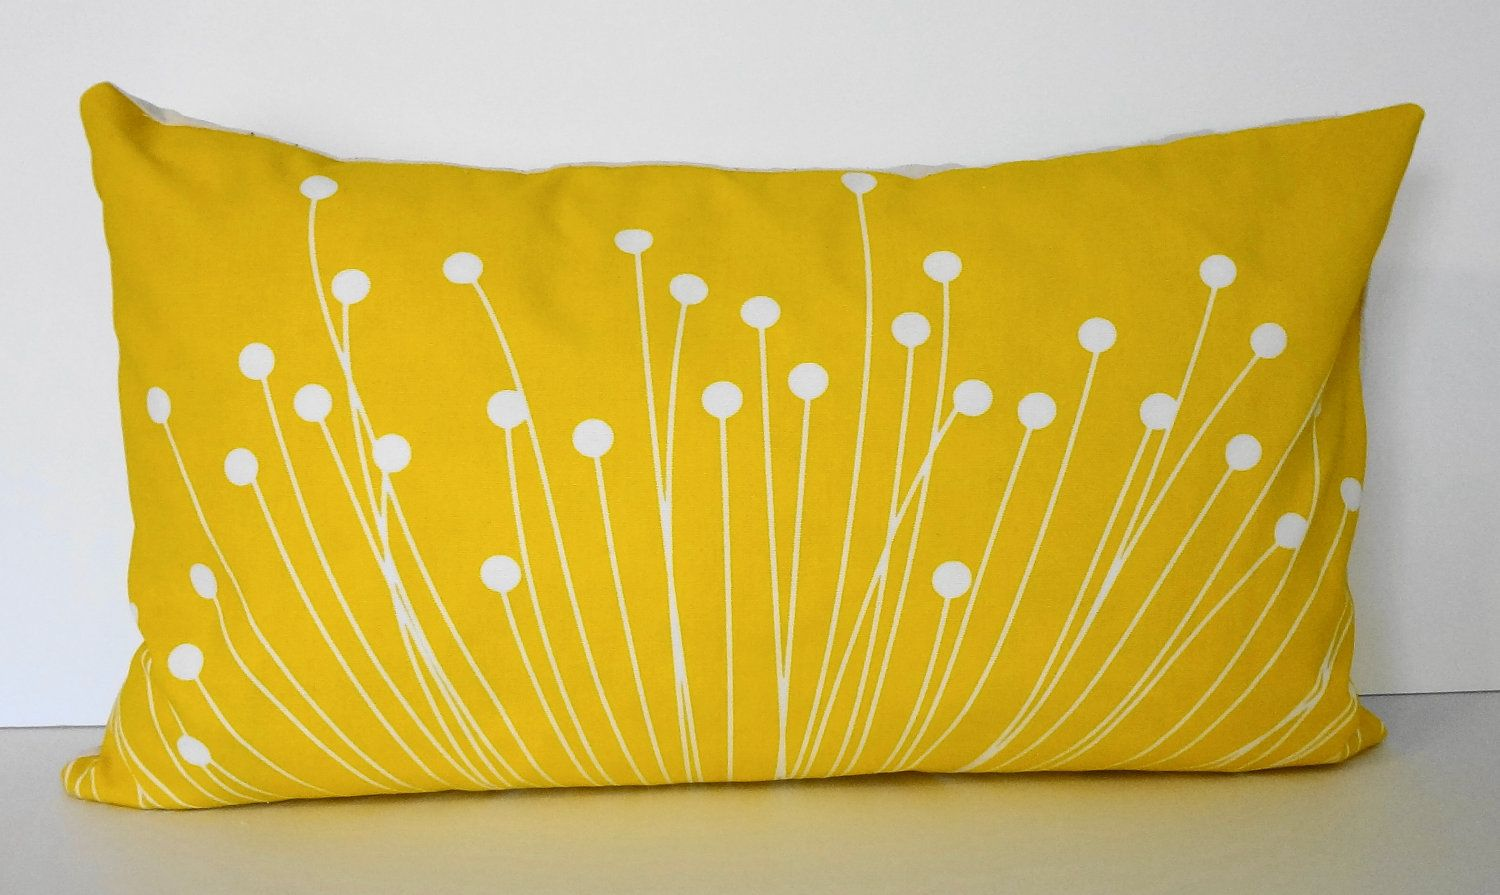 Starburst Yellow Lumbar Pillow Cover Decorative Throw Pillow